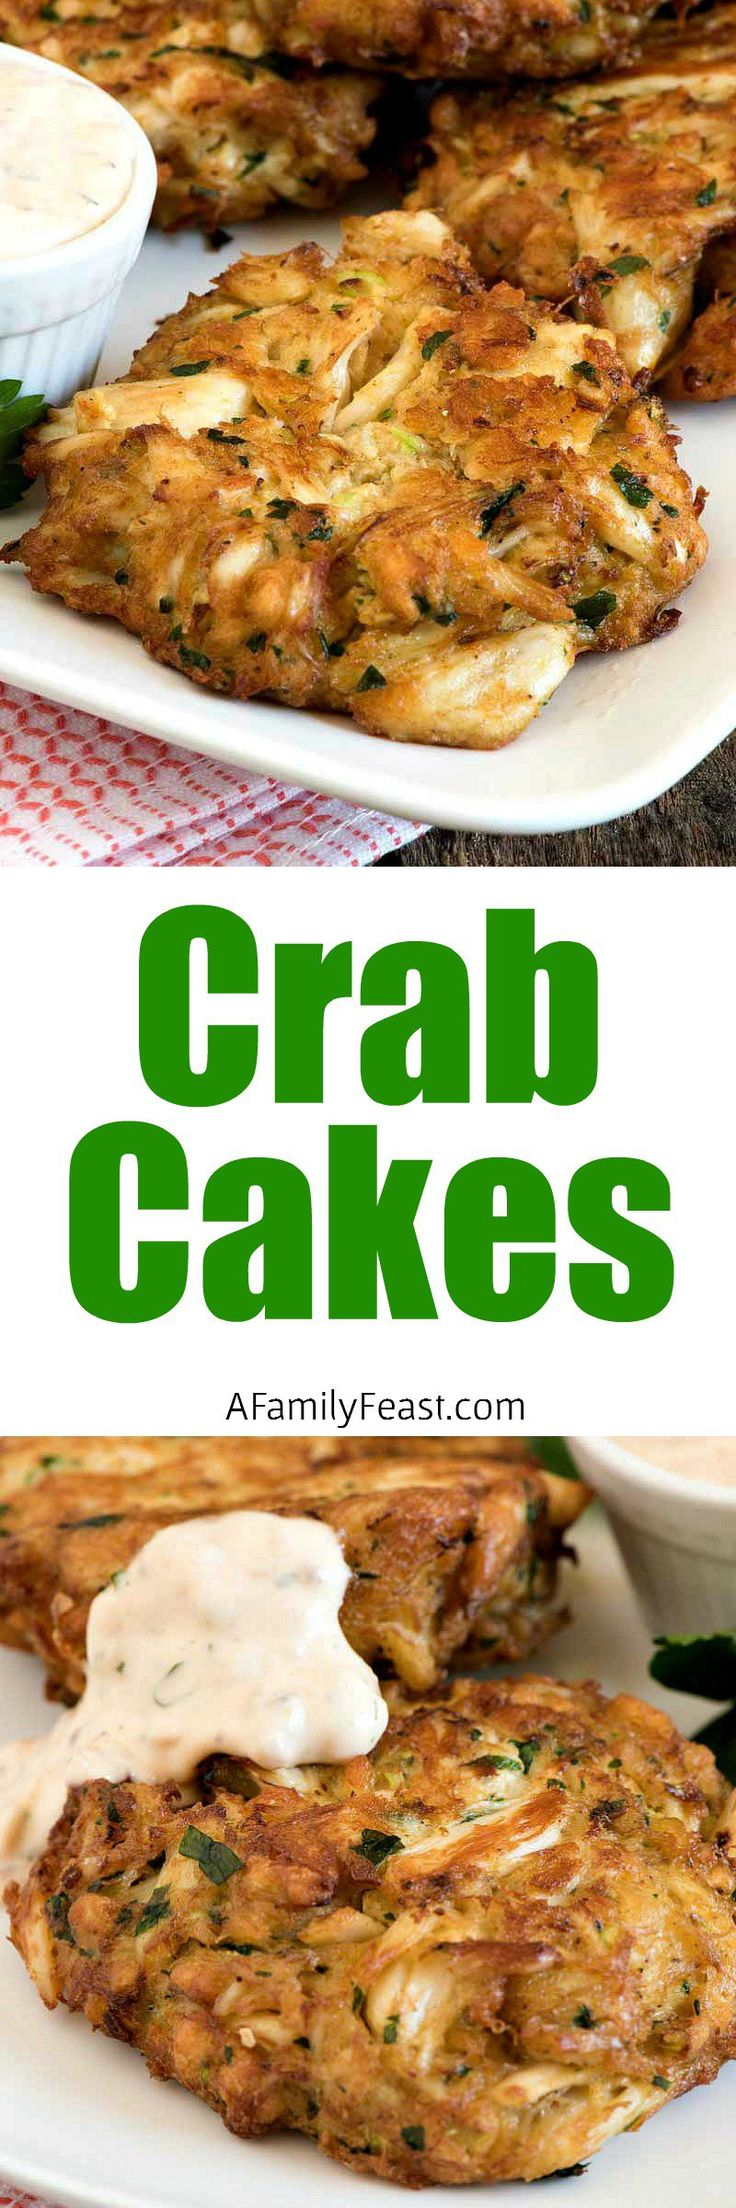 Crab Cakes - Crispy, delicious crab cakes plus a video with step-by-step instructions showing you how to make this easy, delicious meal.